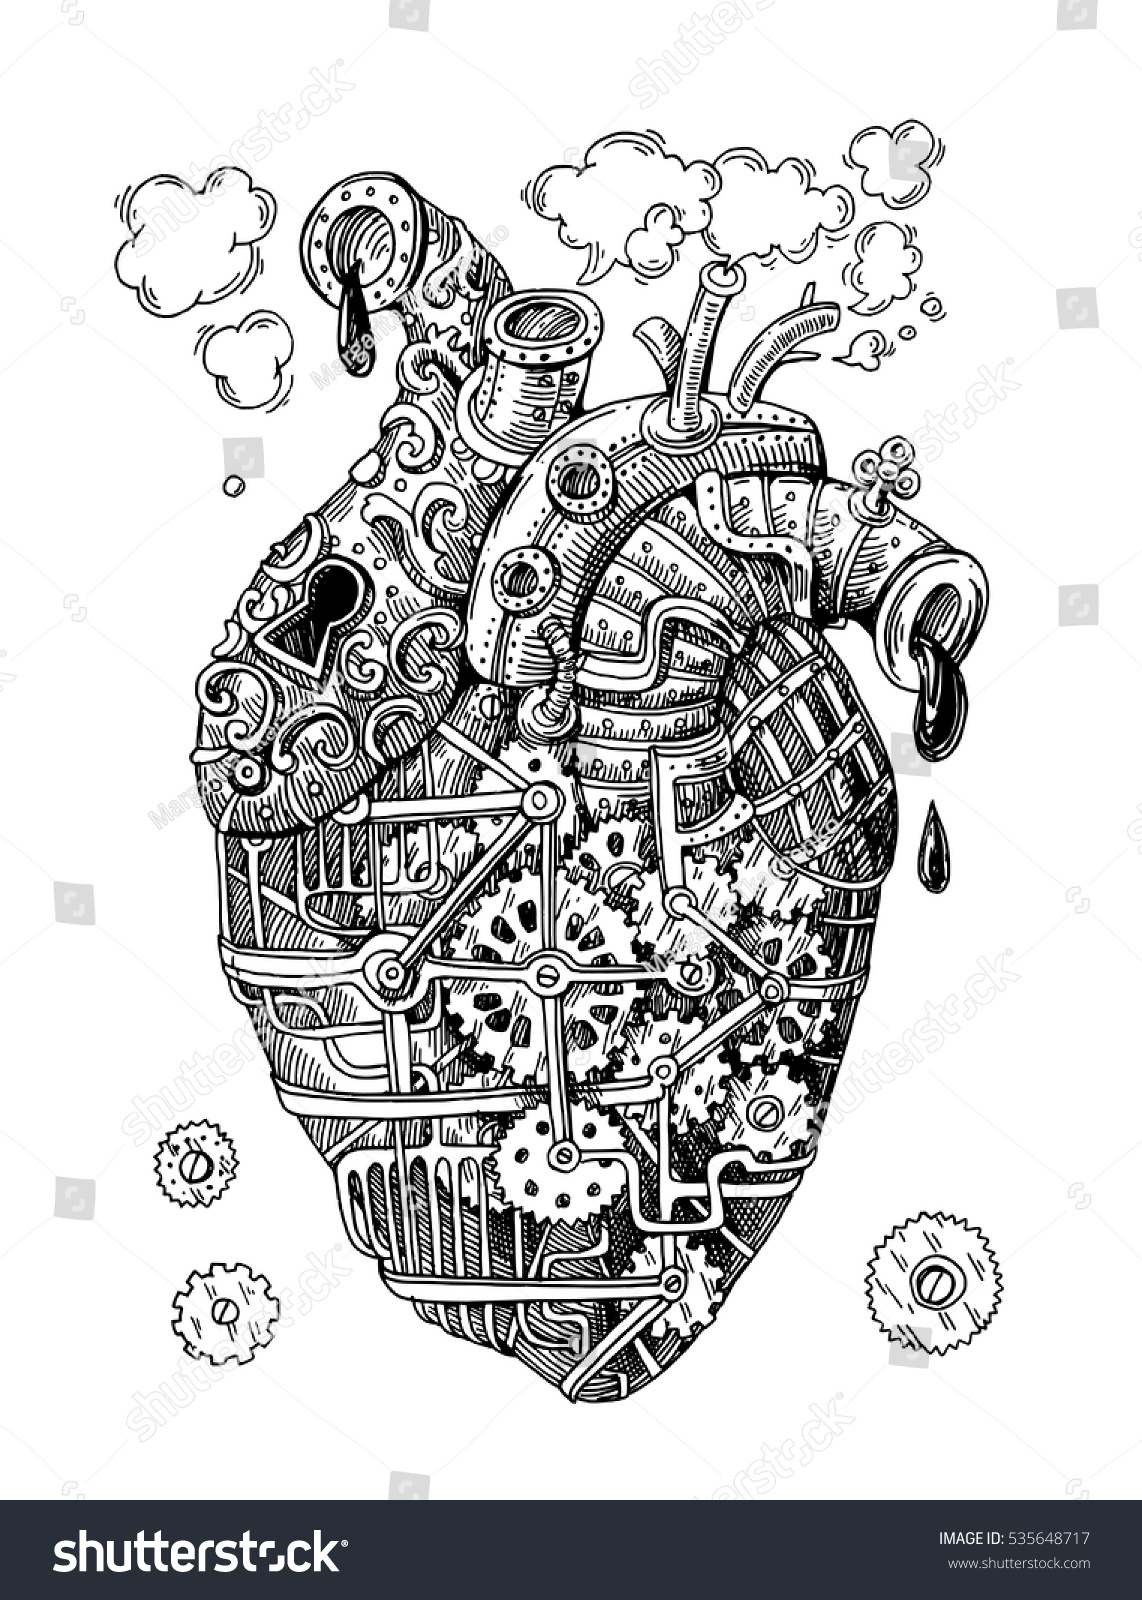 Illustration Mechanical Heart Hand Drawn Vector Stock